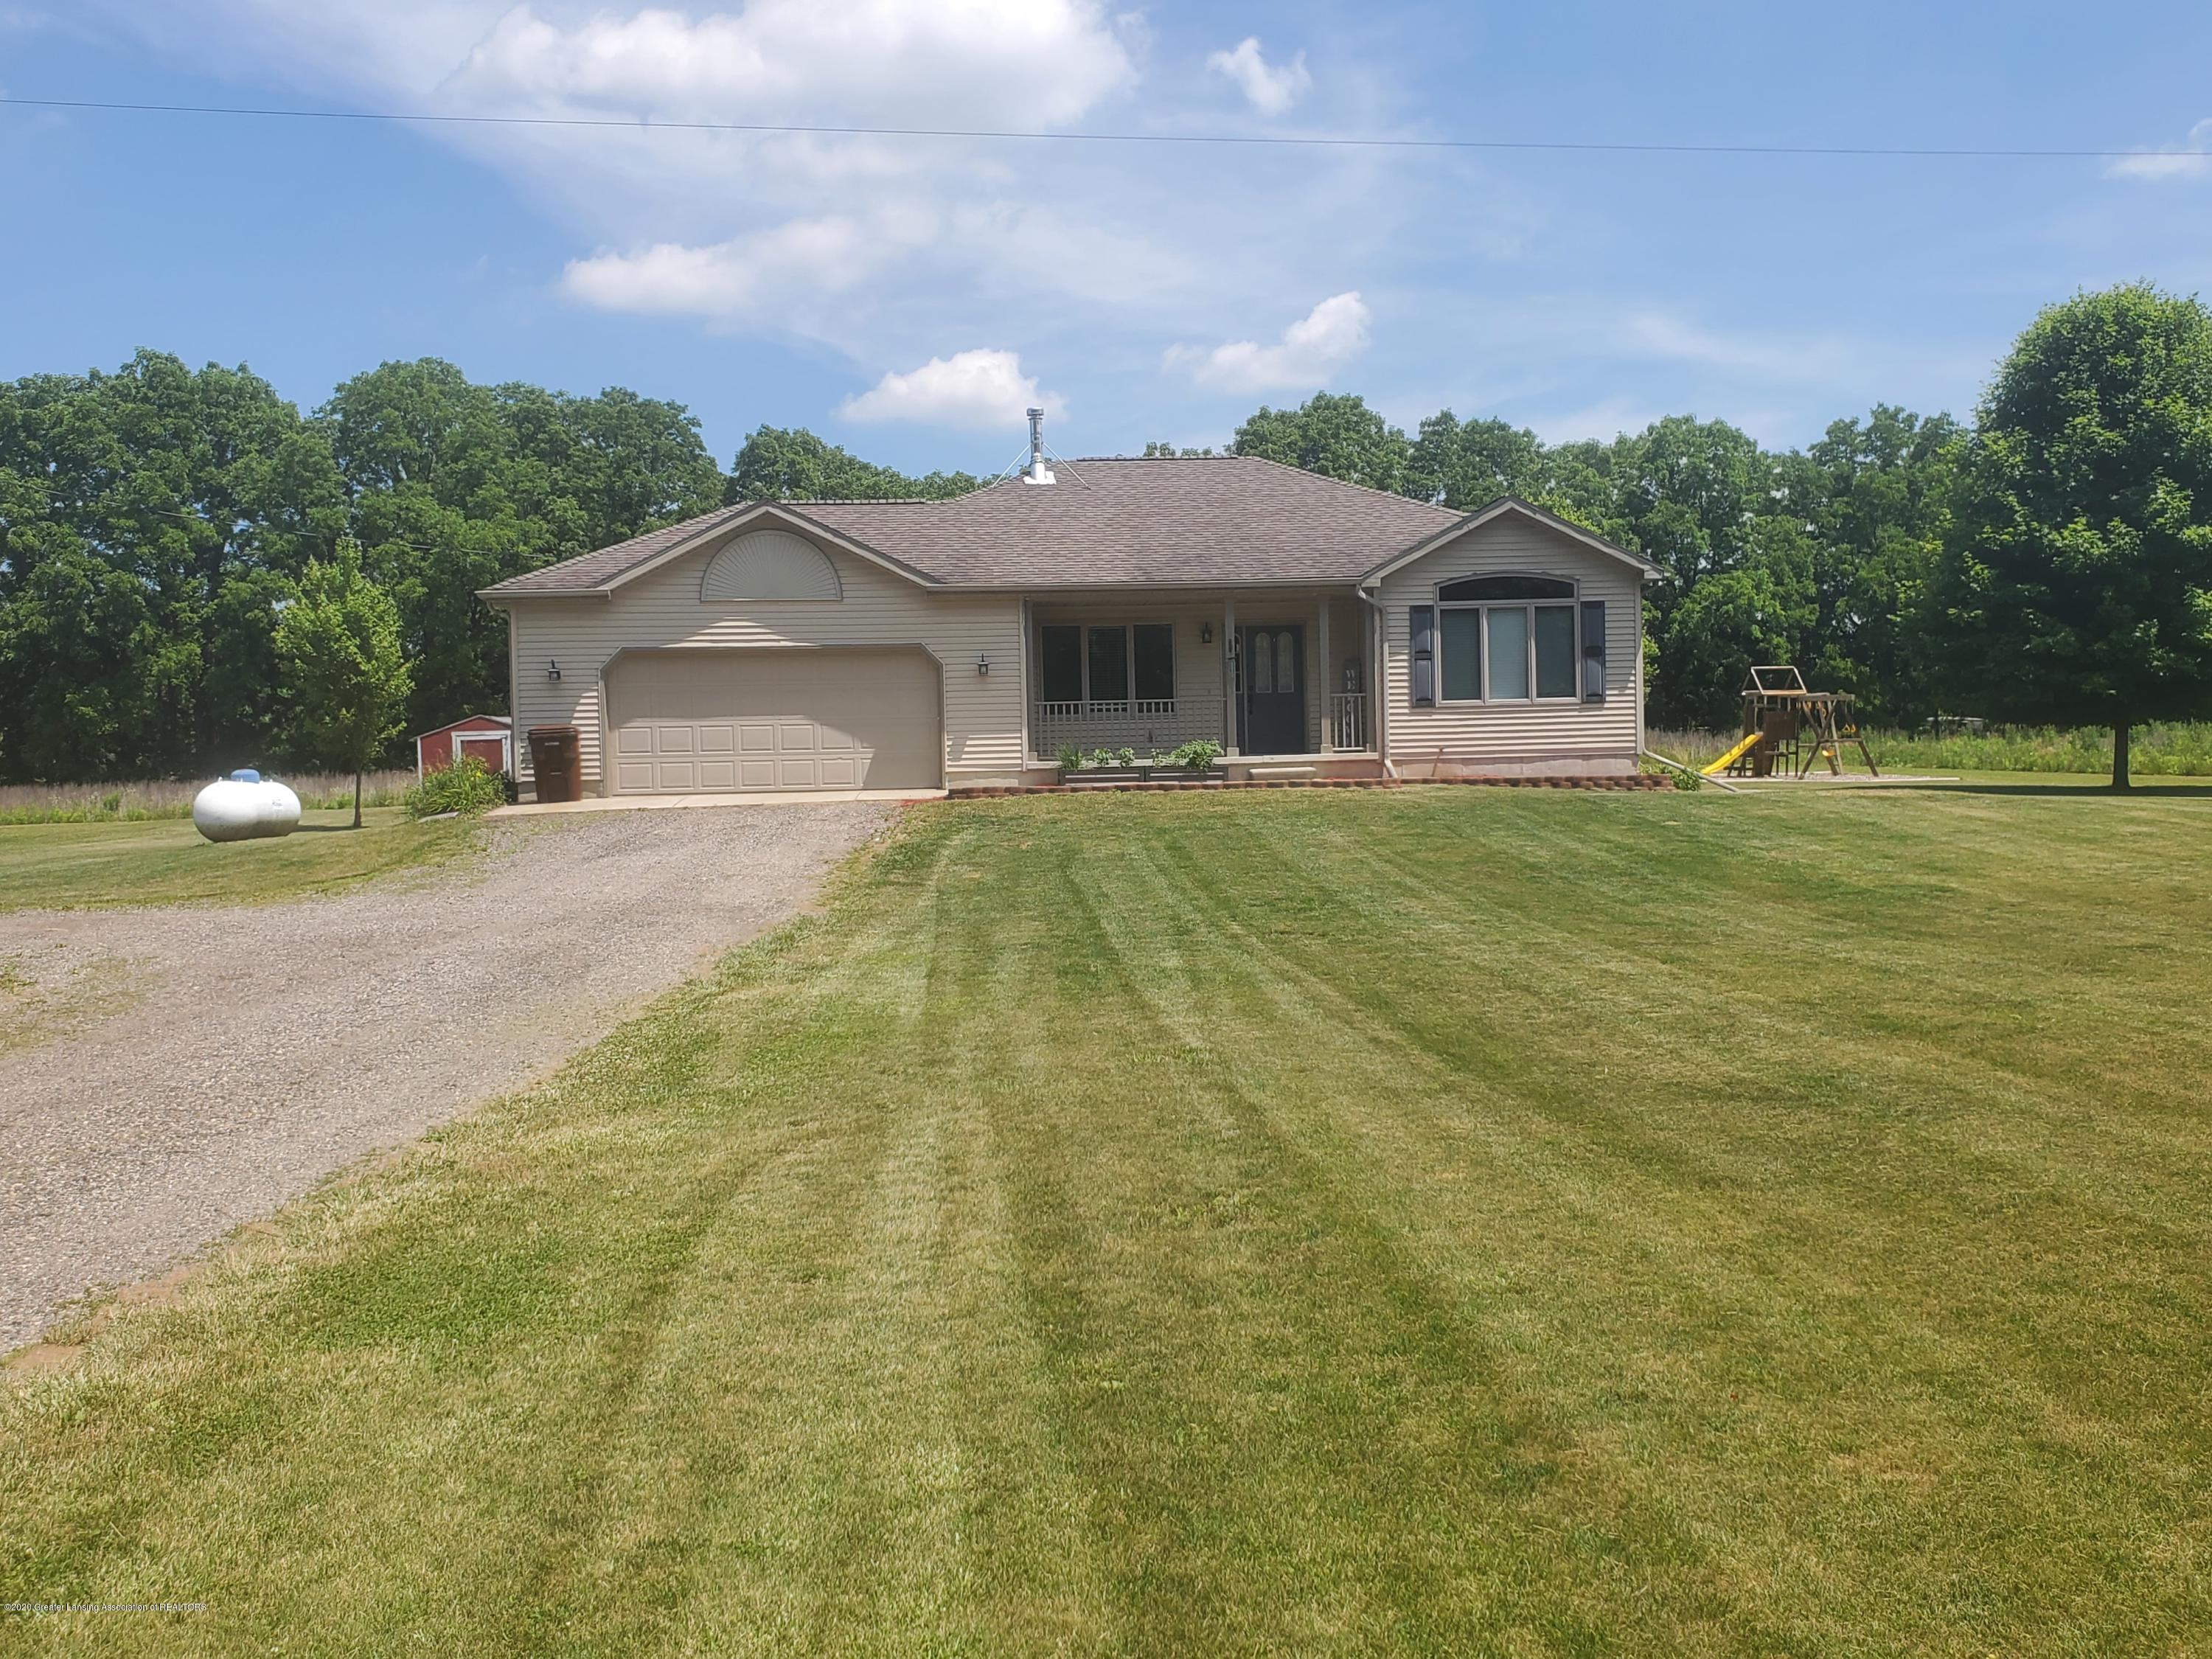 2895 Ackley Rd - 1 - 1